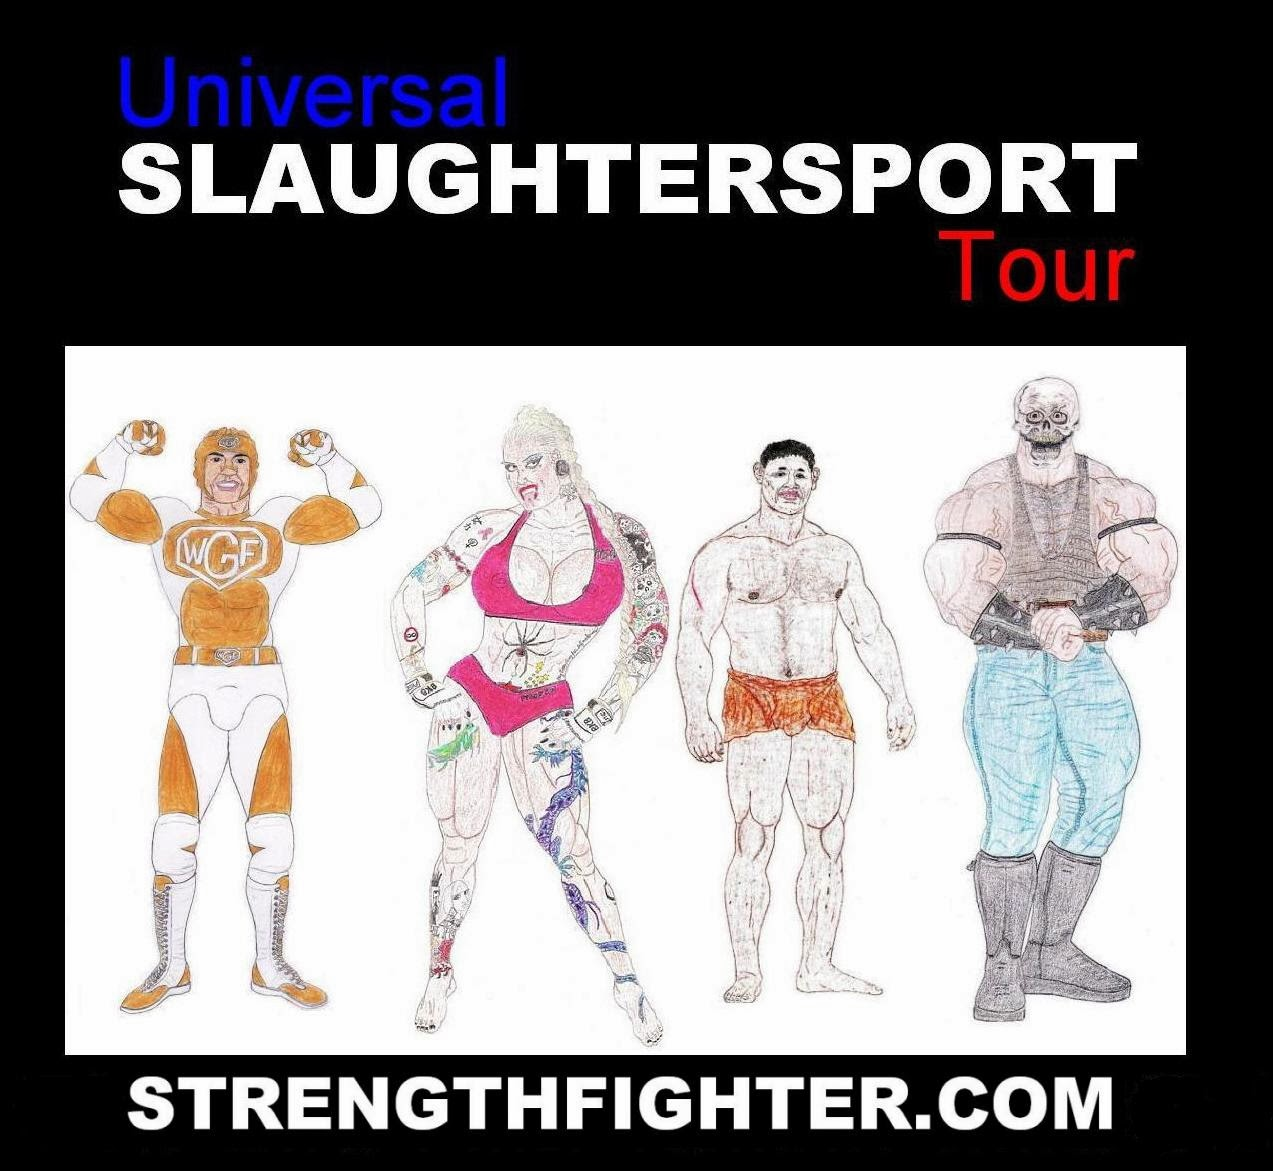 SLAUGHTERSPORT events + records